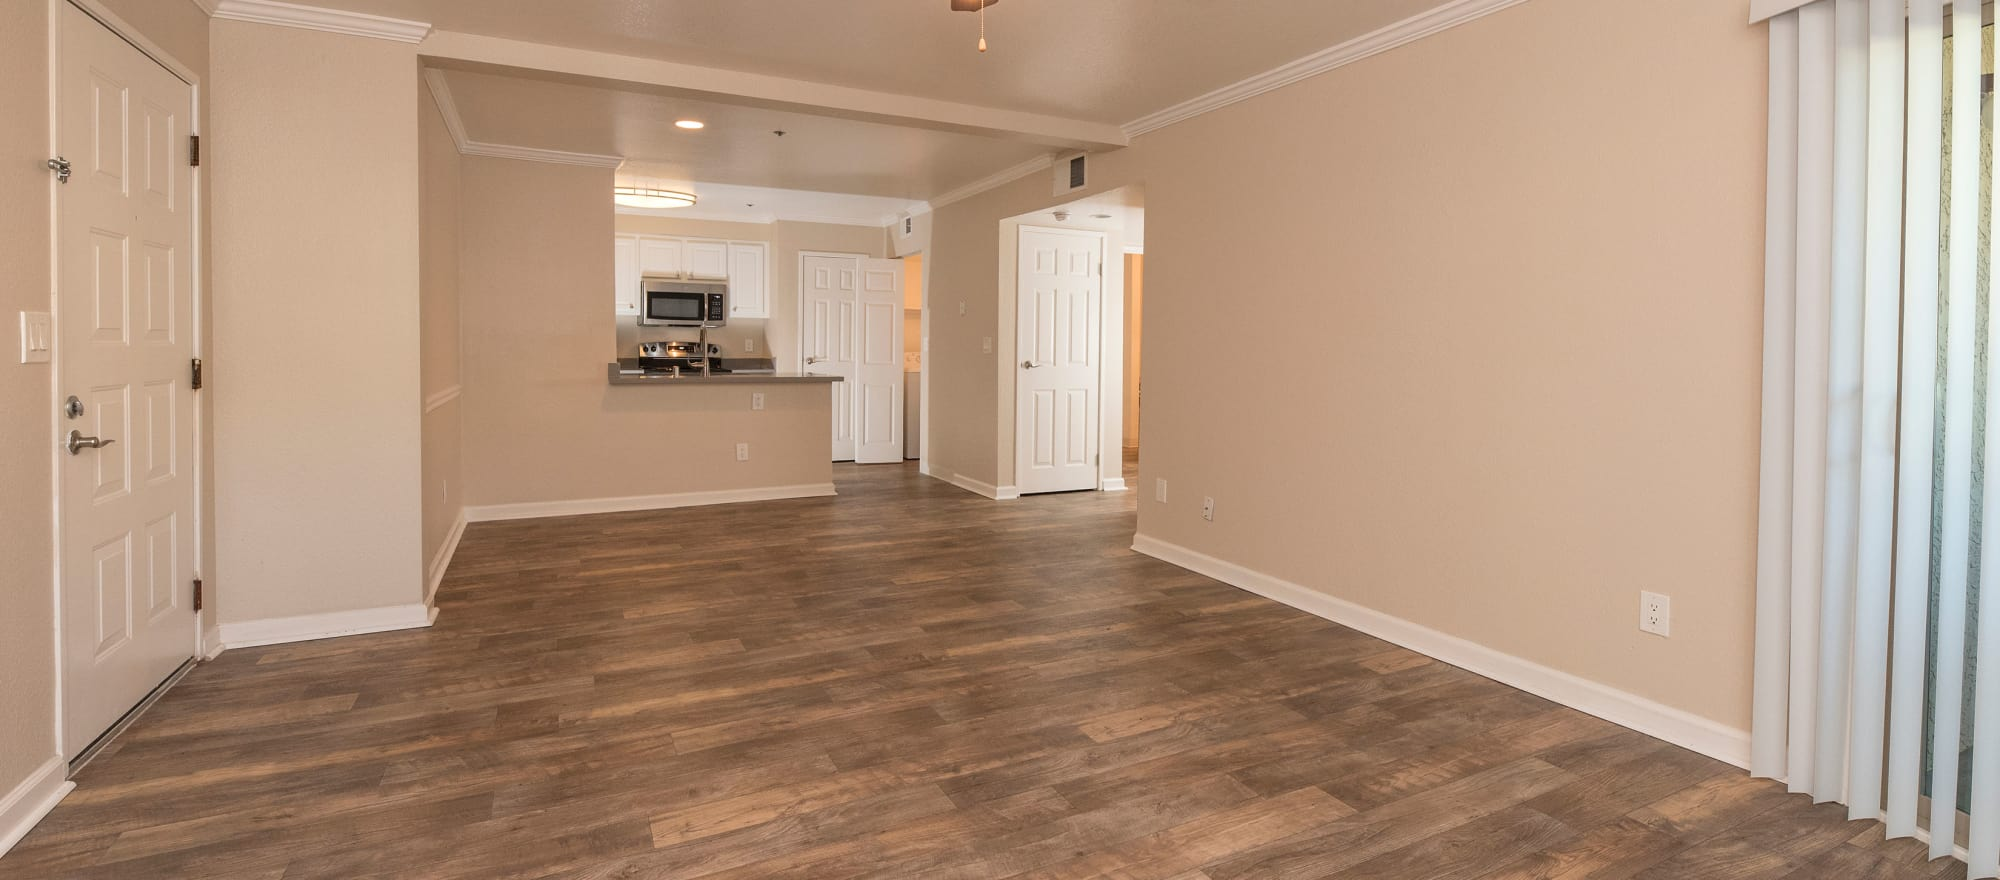 Spacious room at Sterling Heights Apartment Homes in Benicia, California